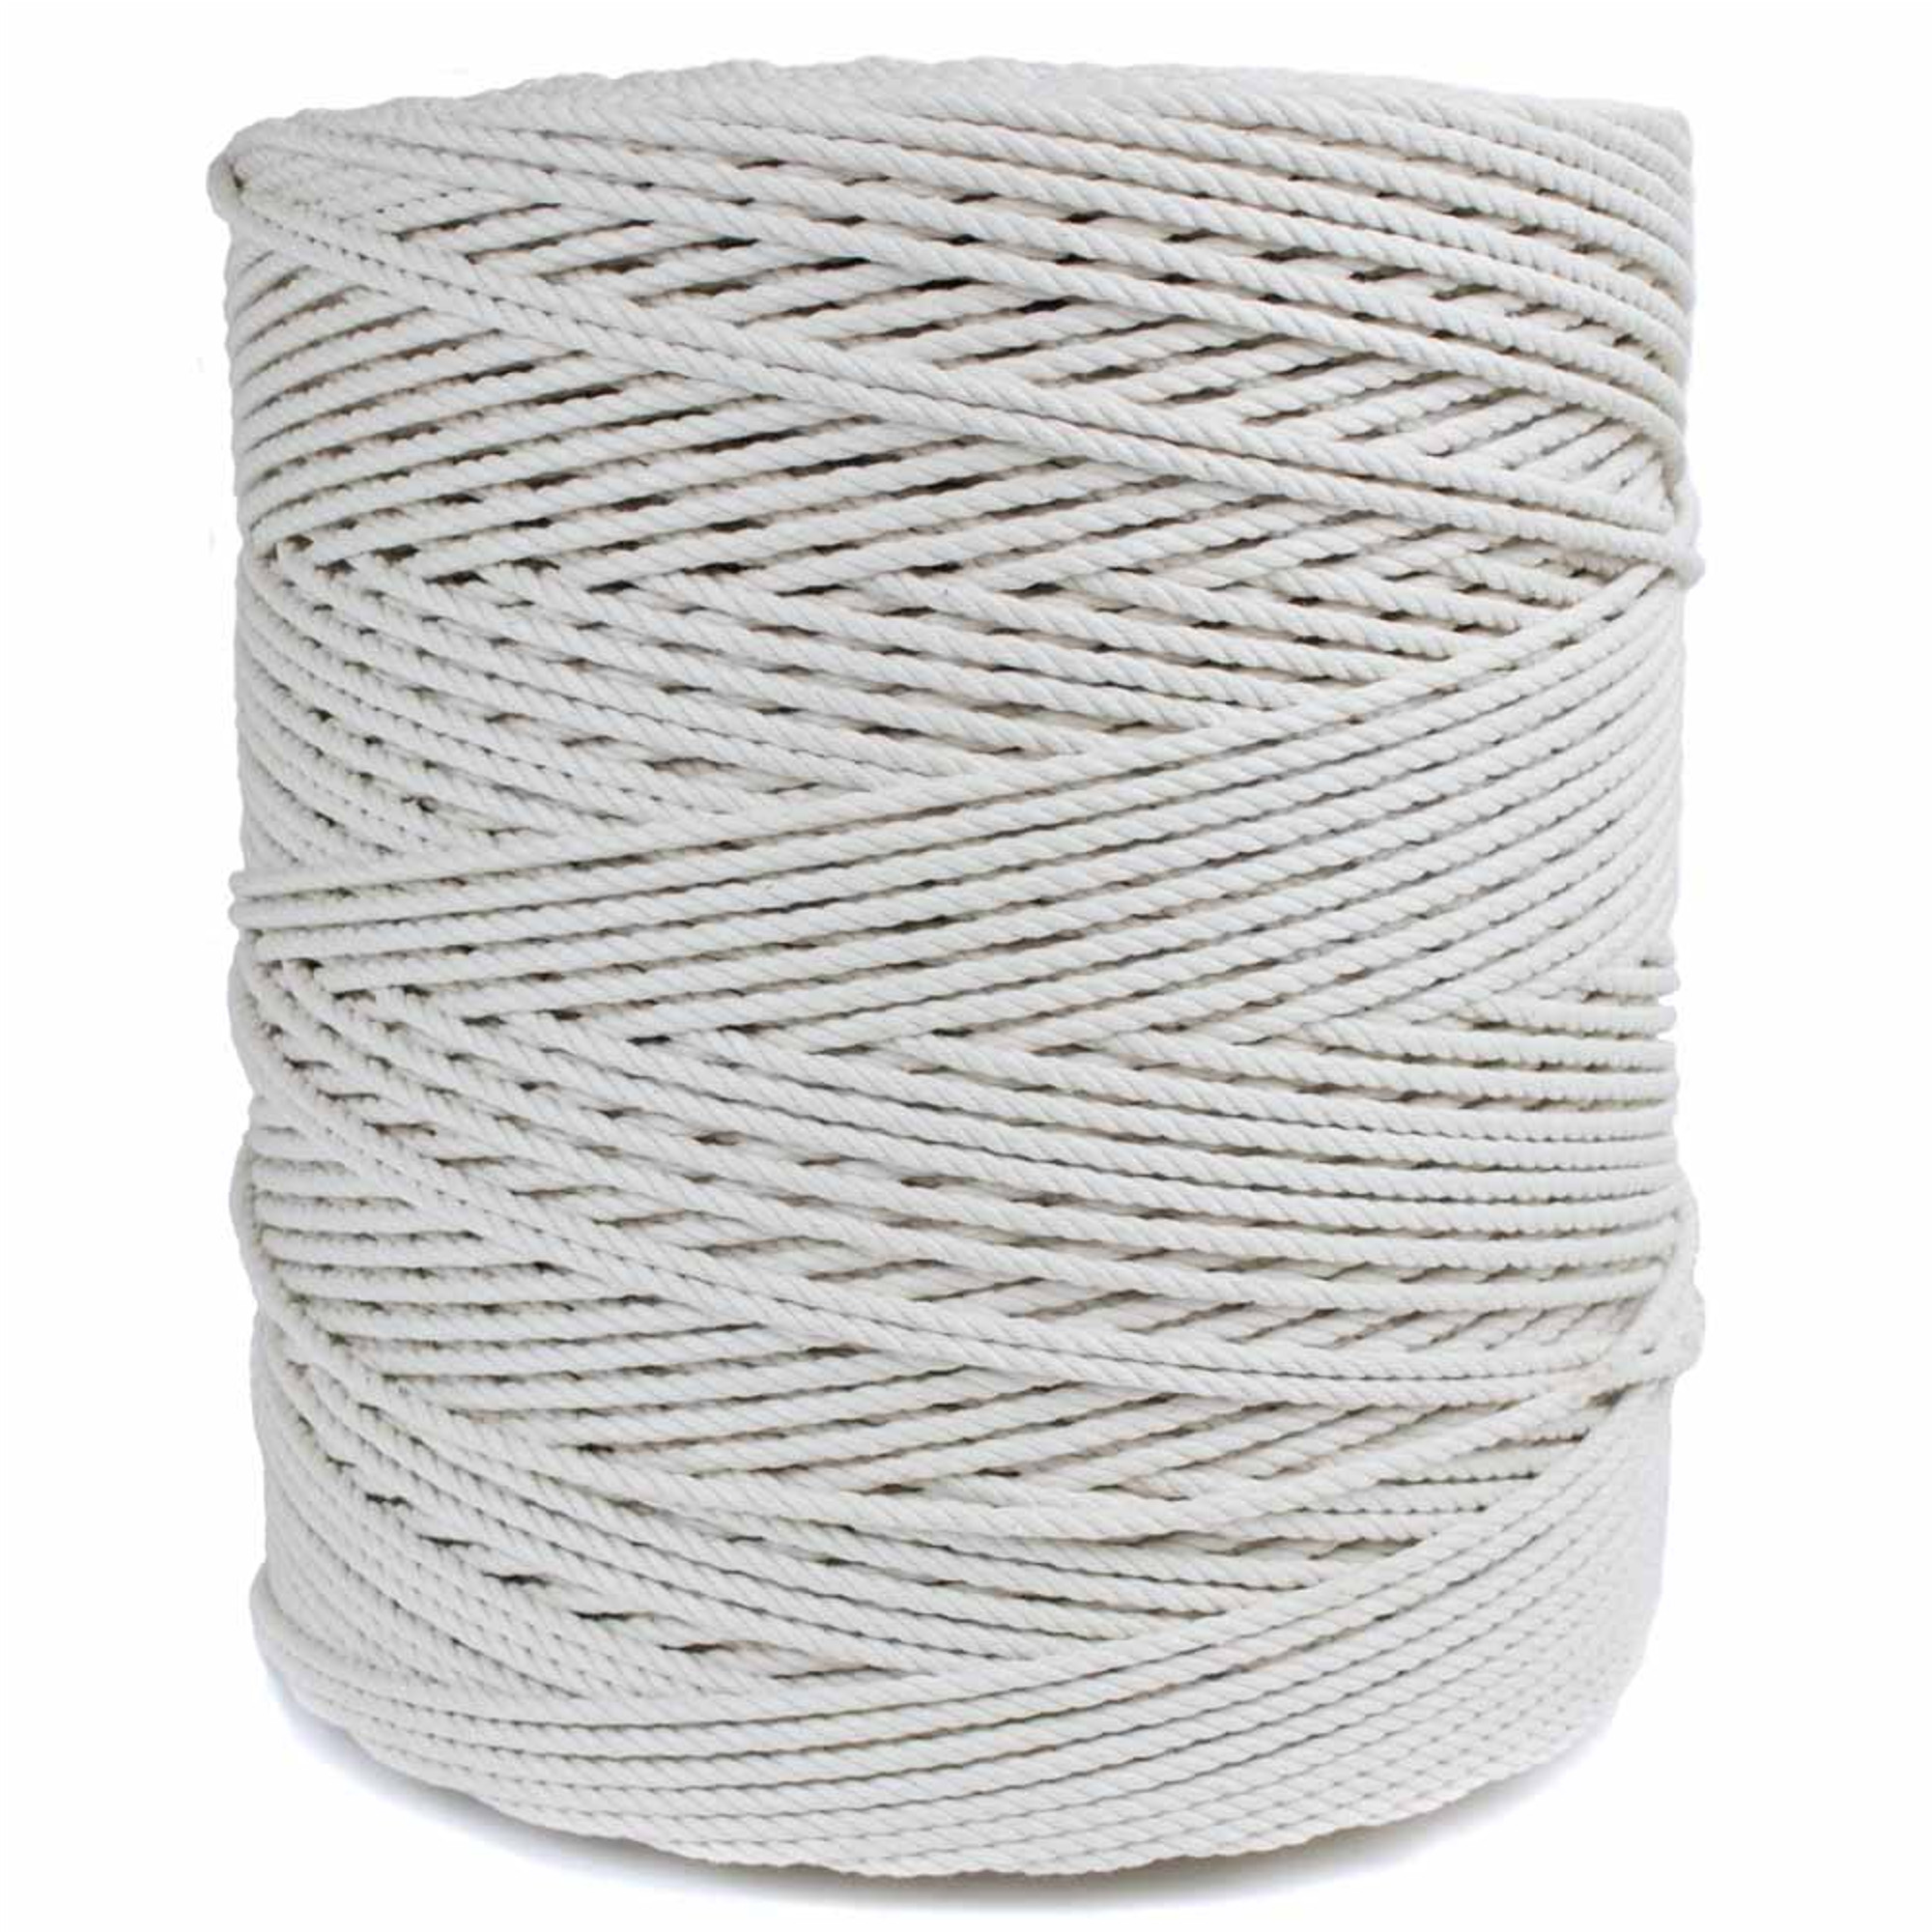 3//8 1//4 Several Lengths GOLBERG G 5//32 GOLBERG Solid Braid Nylon Rope in 1//8 5//16 and 1//2 inch Diameters 3//16